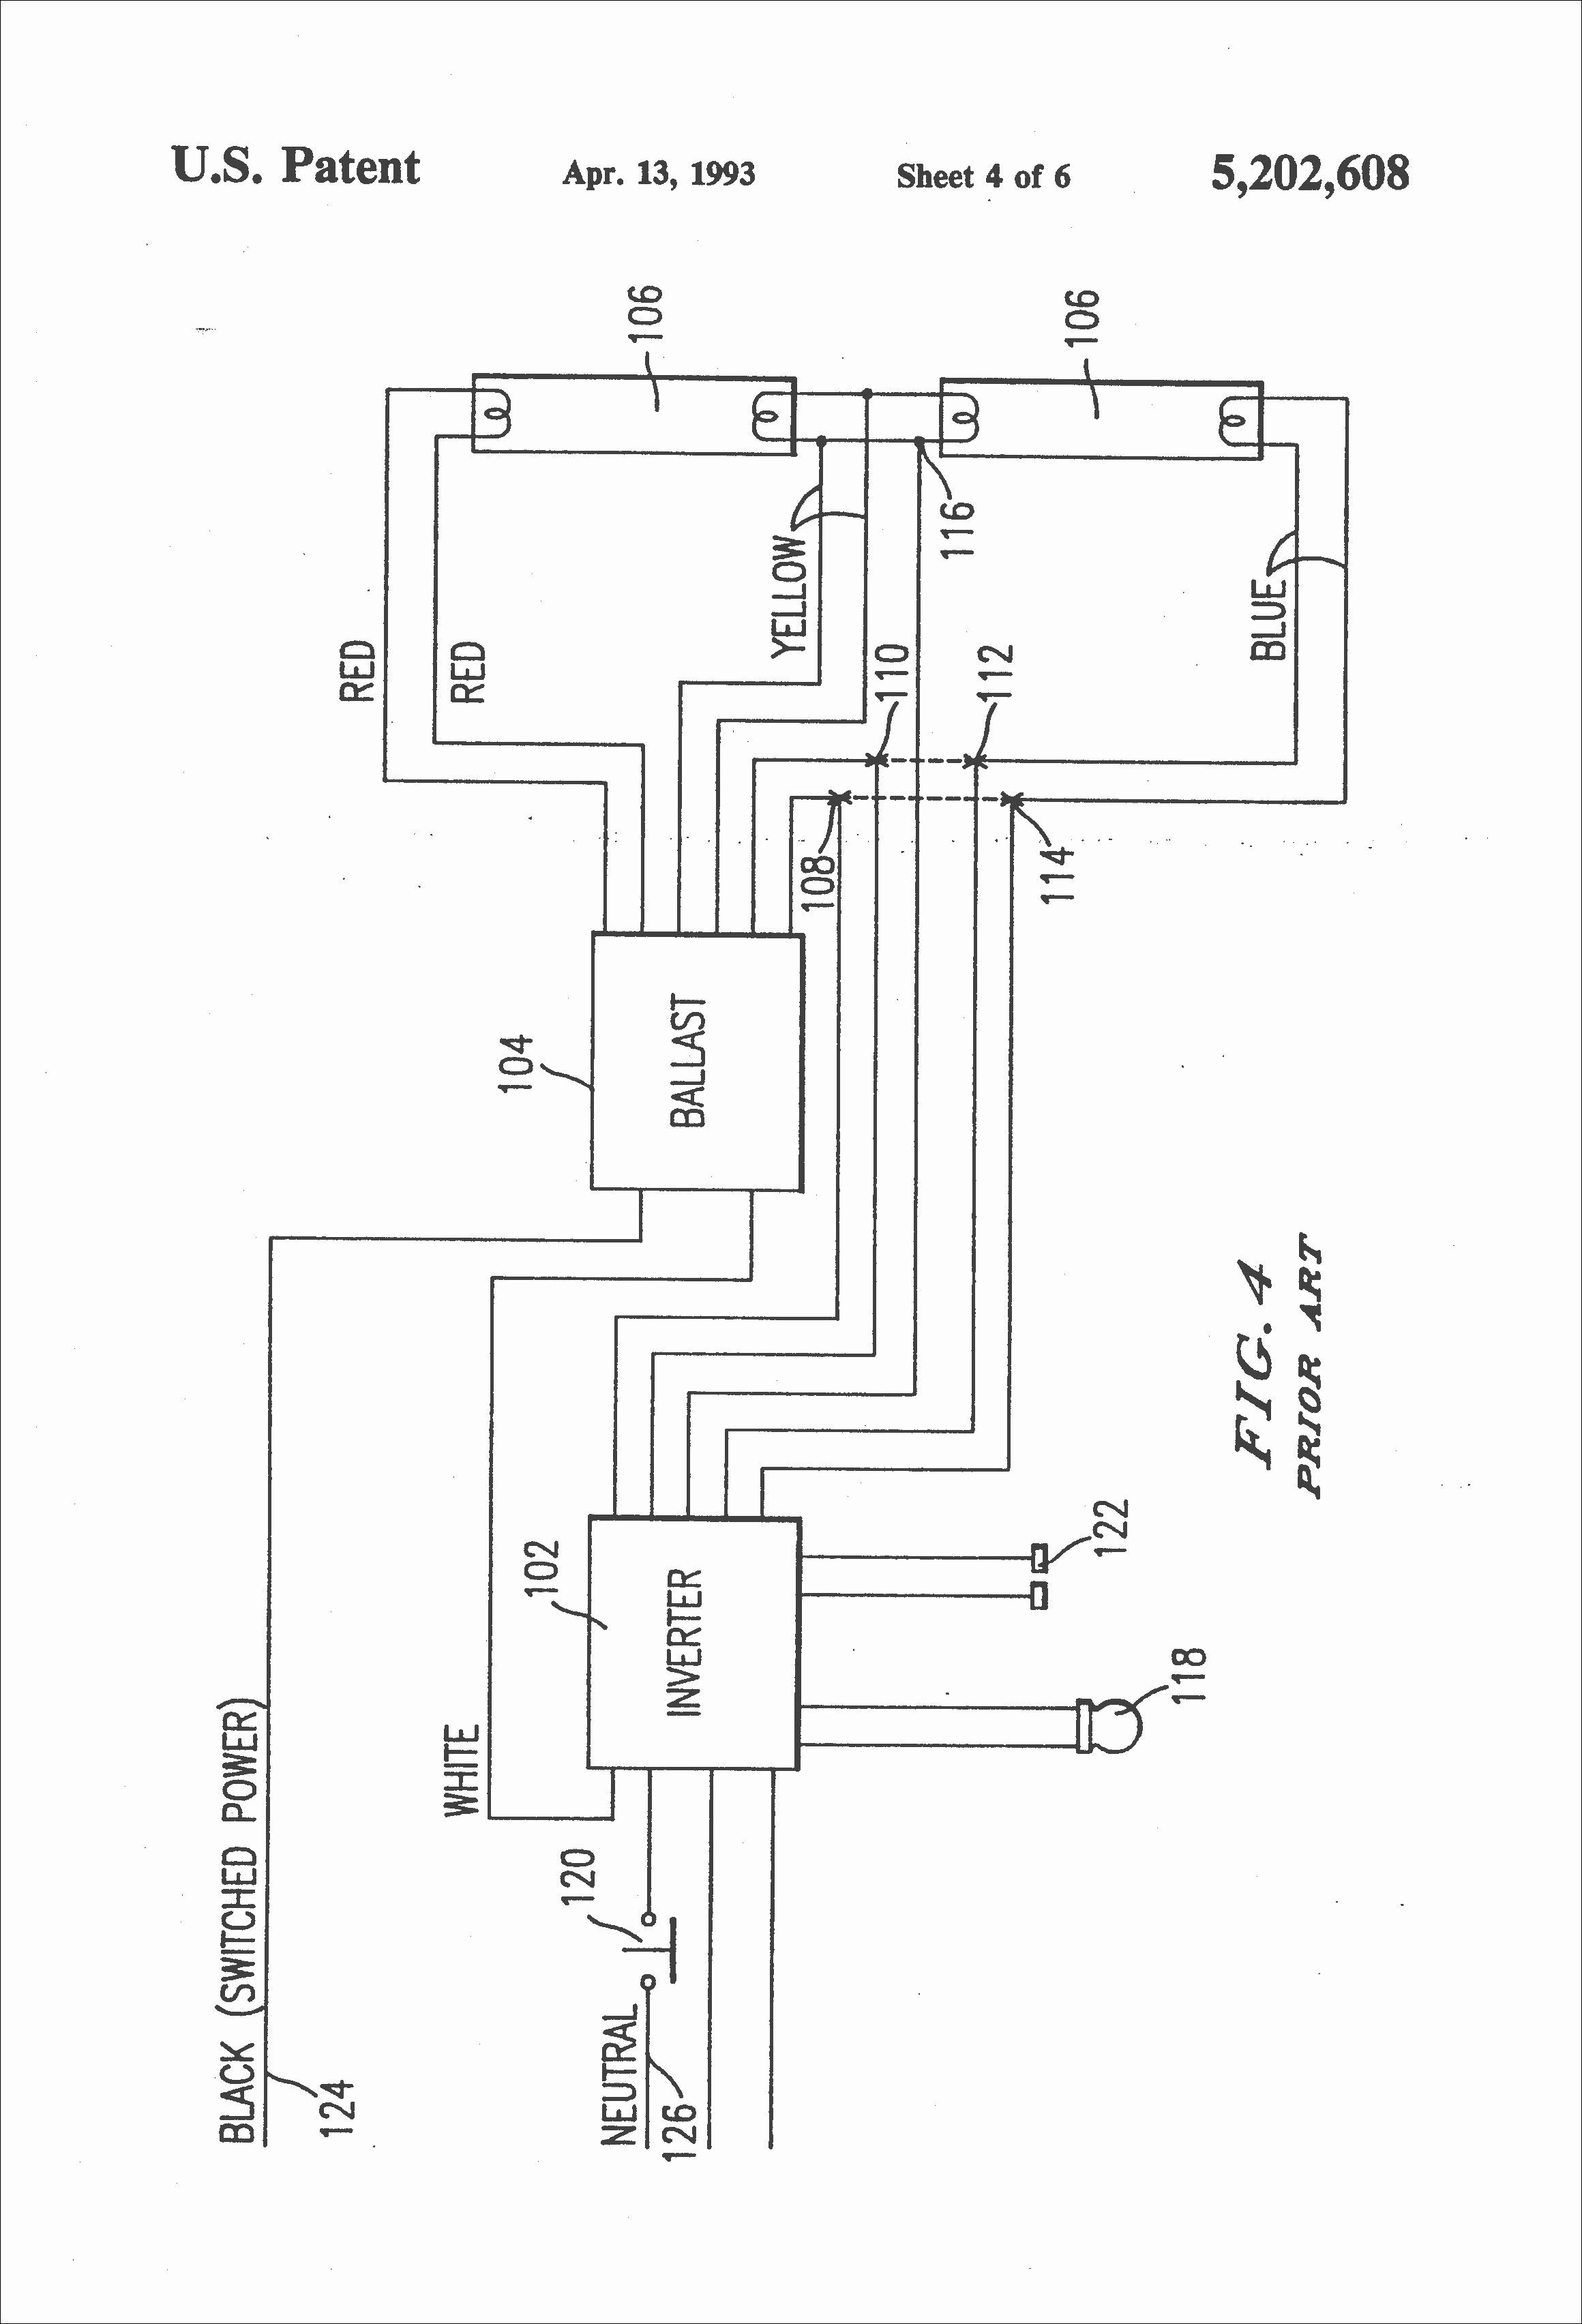 Unique Wiring Diagram For Can Lights Diagrams Digramssample Diagramimages Wiringdiagramsample Wiringdiagram Lighting Diagram Diagram Ballast